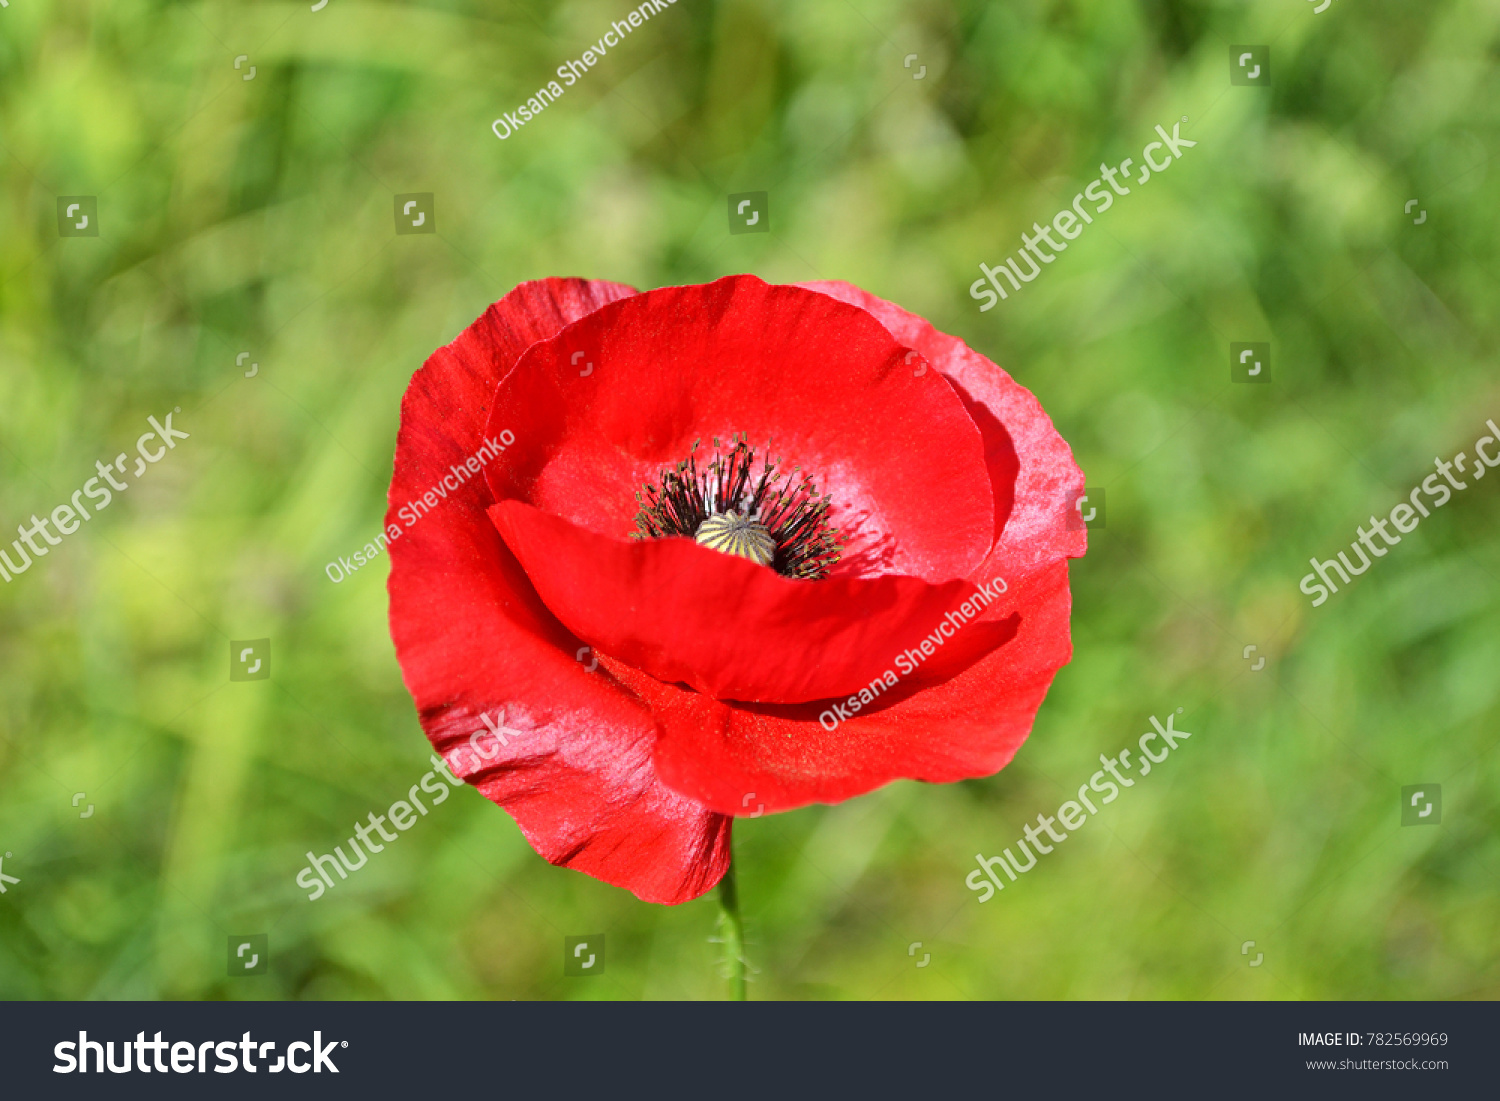 Red Poppy Flower Growing In A Garden Closeup Ez Canvas